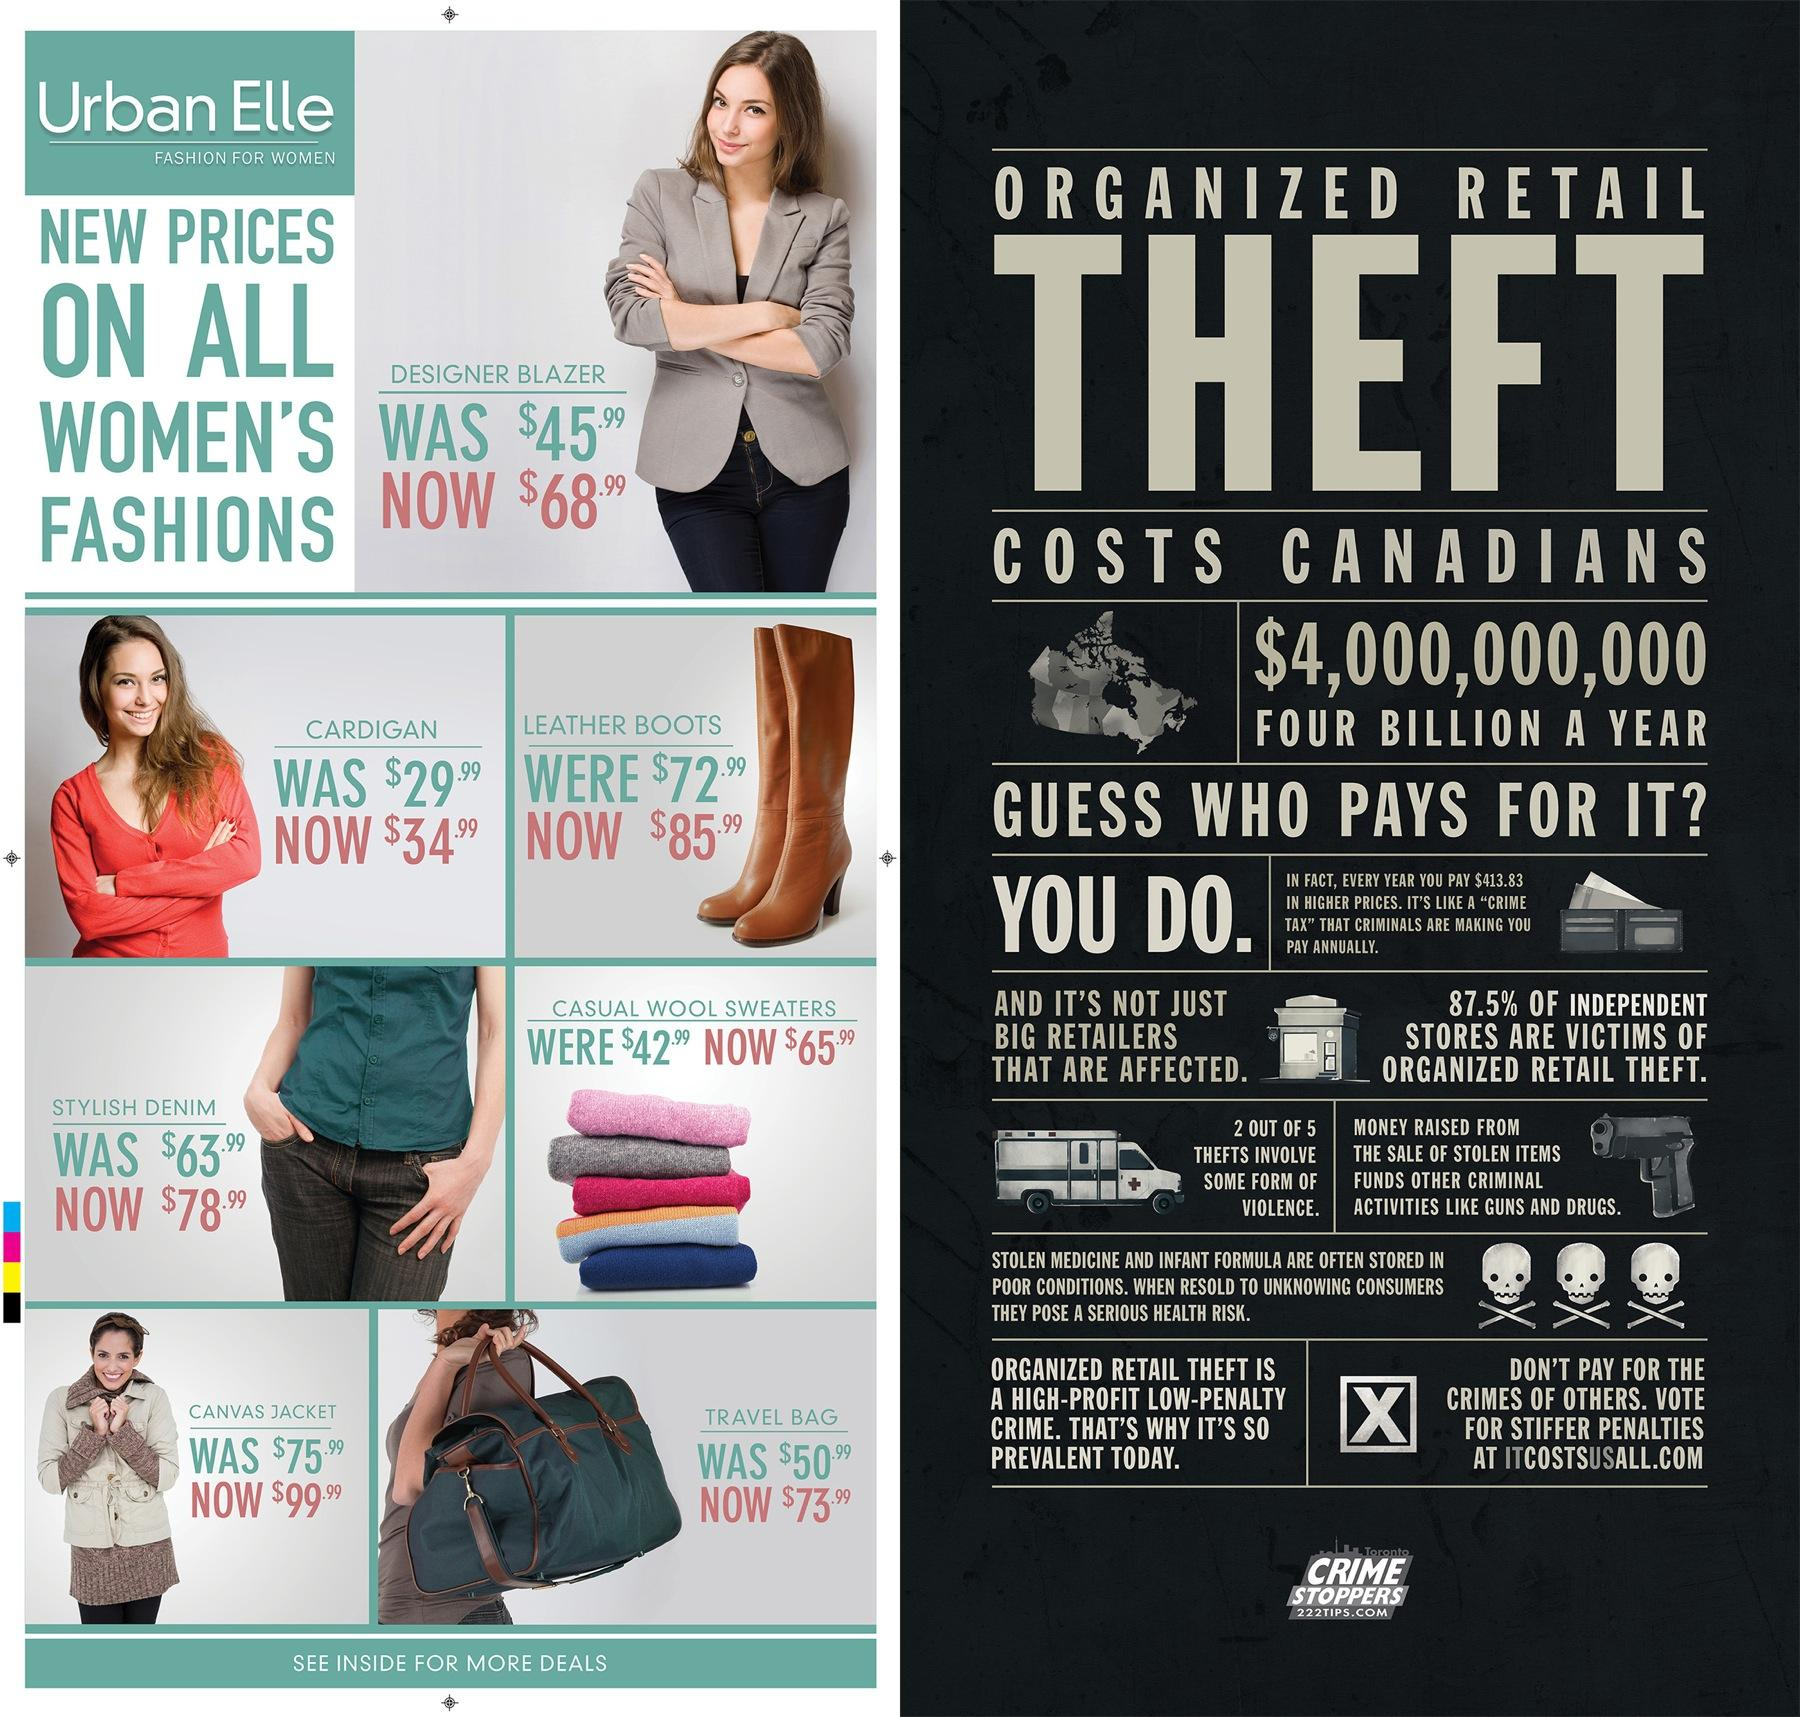 Toronto Crime Stoppers Direct Ad -  Urban Elle